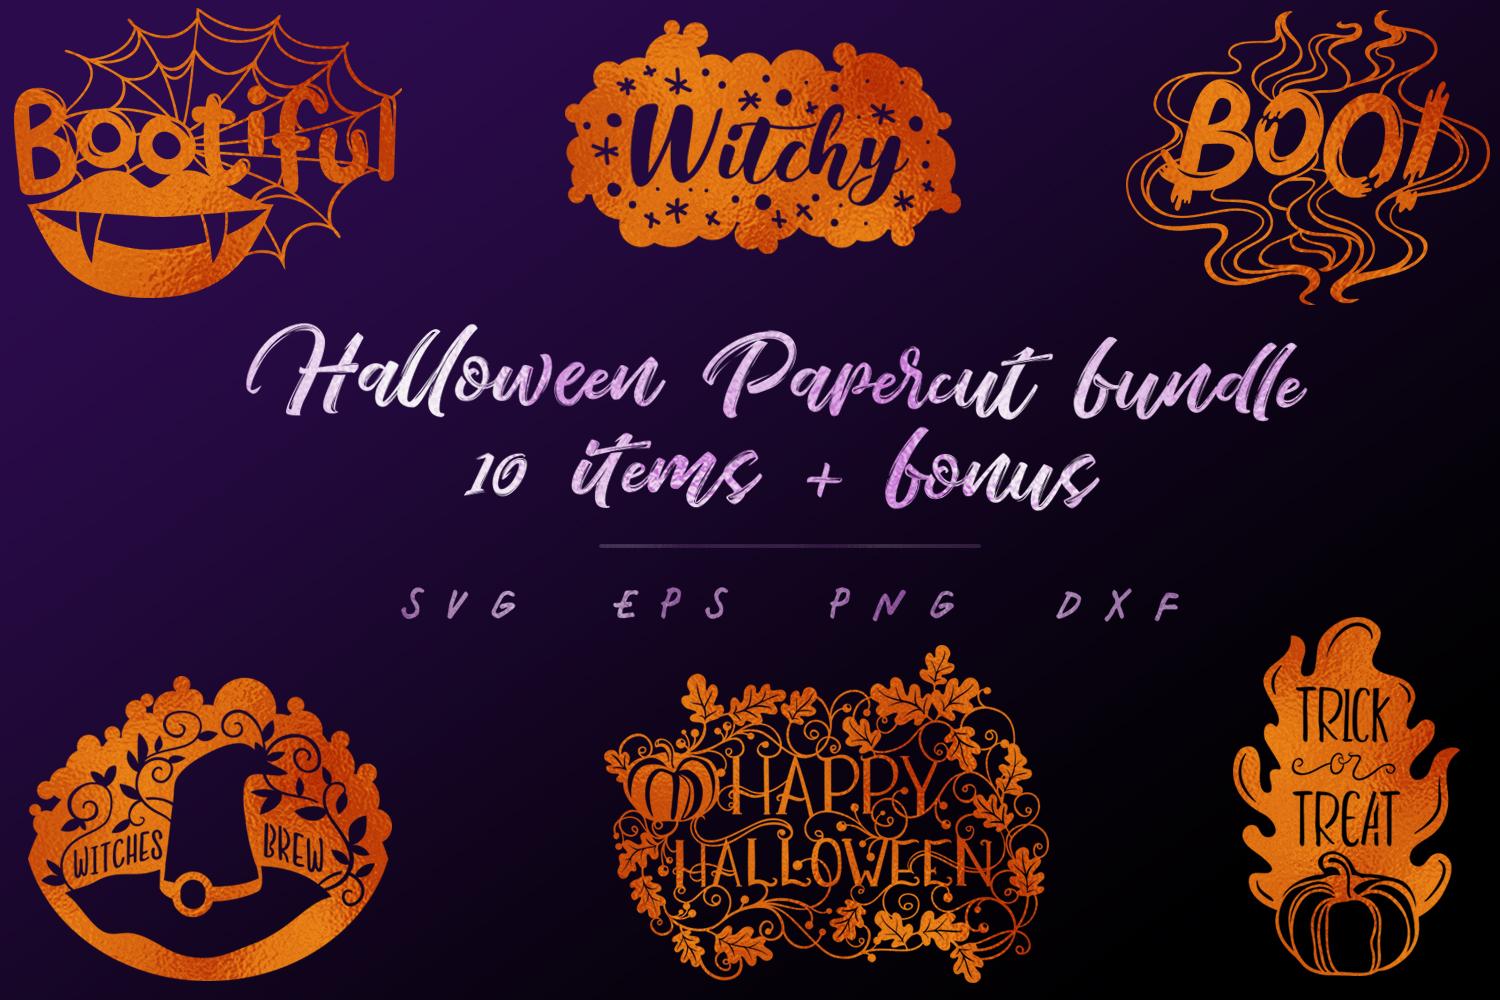 Download Free Halloween Papercut Bundle 10 Items Bonus Graphic By Tatiana for Cricut Explore, Silhouette and other cutting machines.